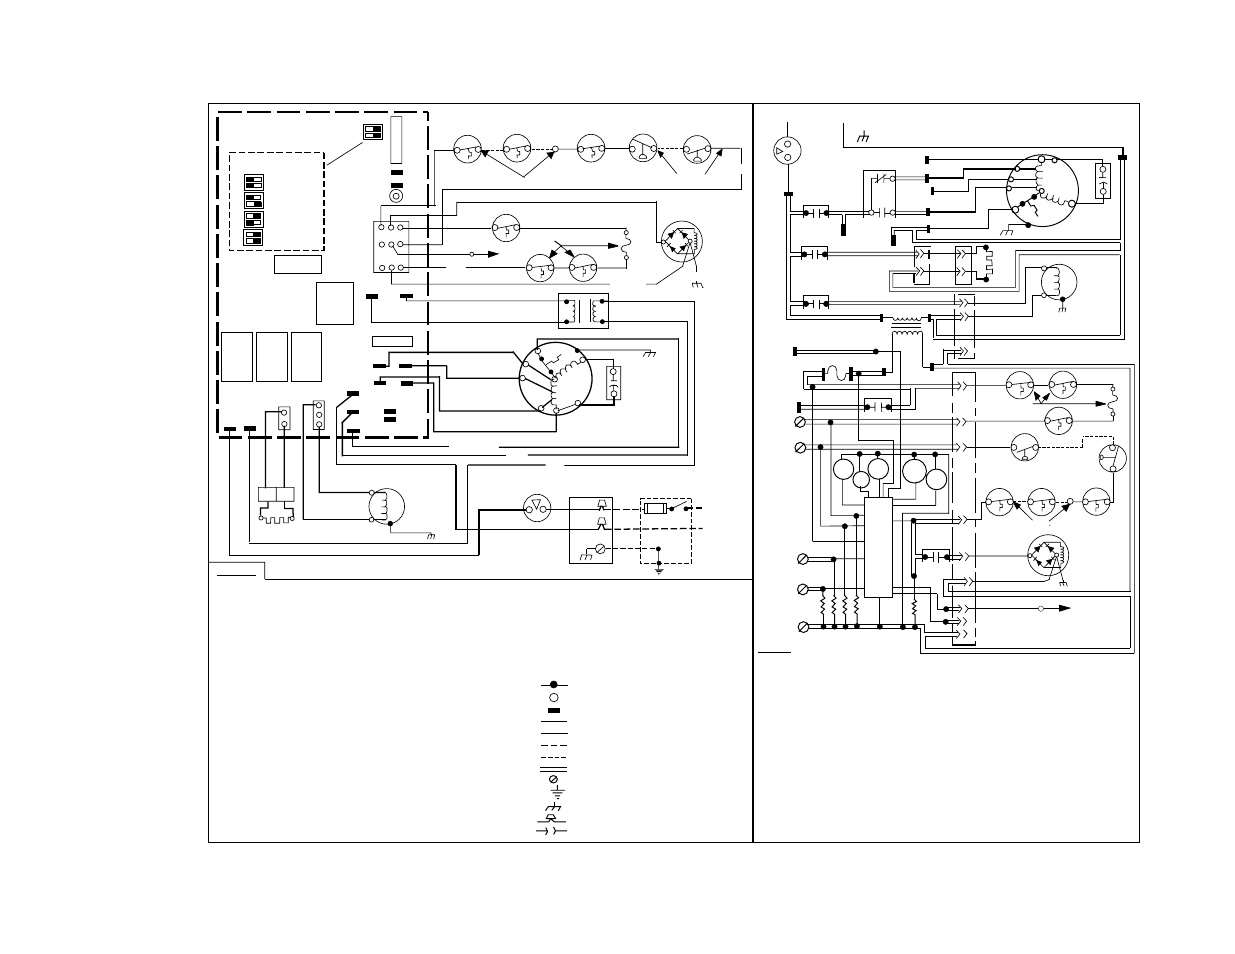 bryant thermostat wiring diagram baldor 10 hp electric motor nest the learning 2